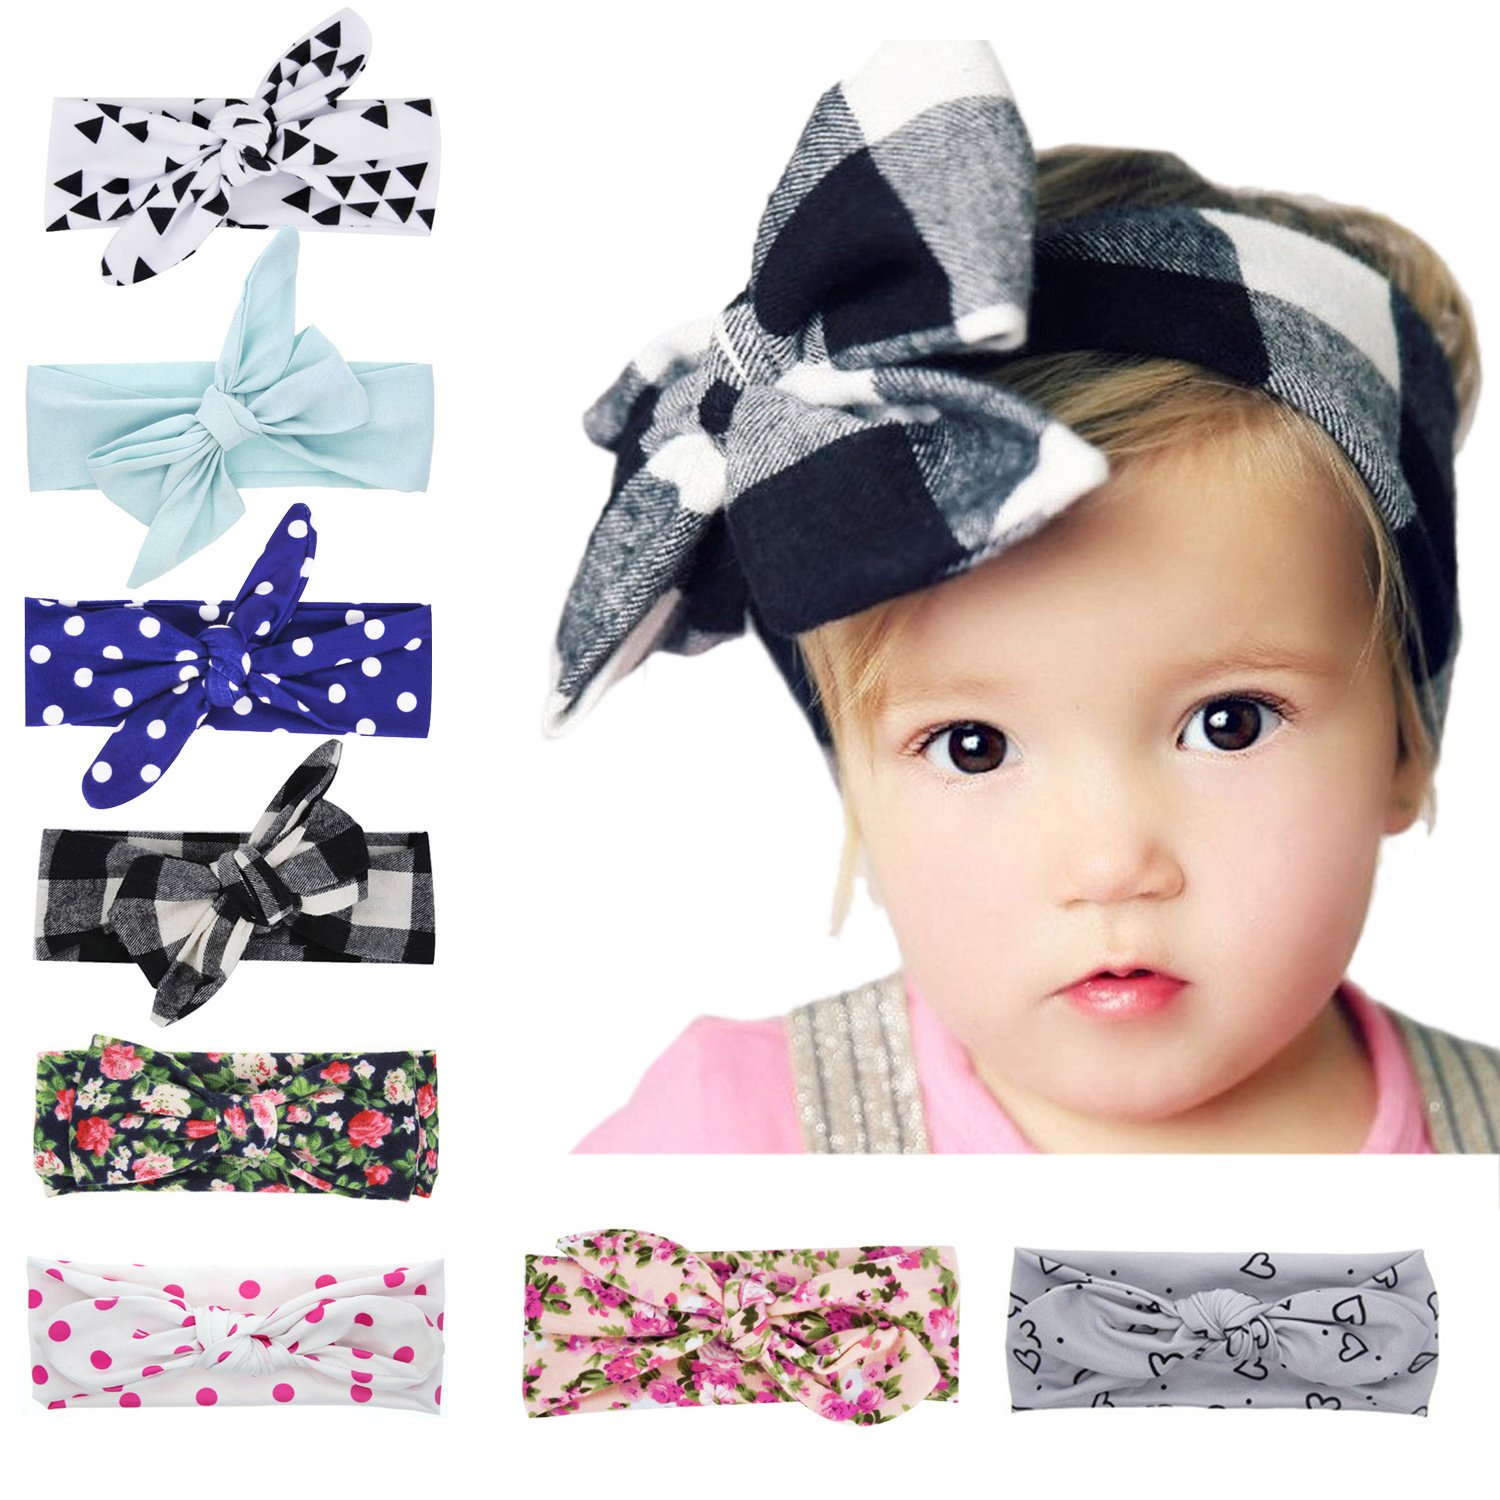 Fascigirl Baby Girl Headband, 12 Pcs Baby Knotted Headwrap Hairband for Infant Toddlers (D Multicolor)